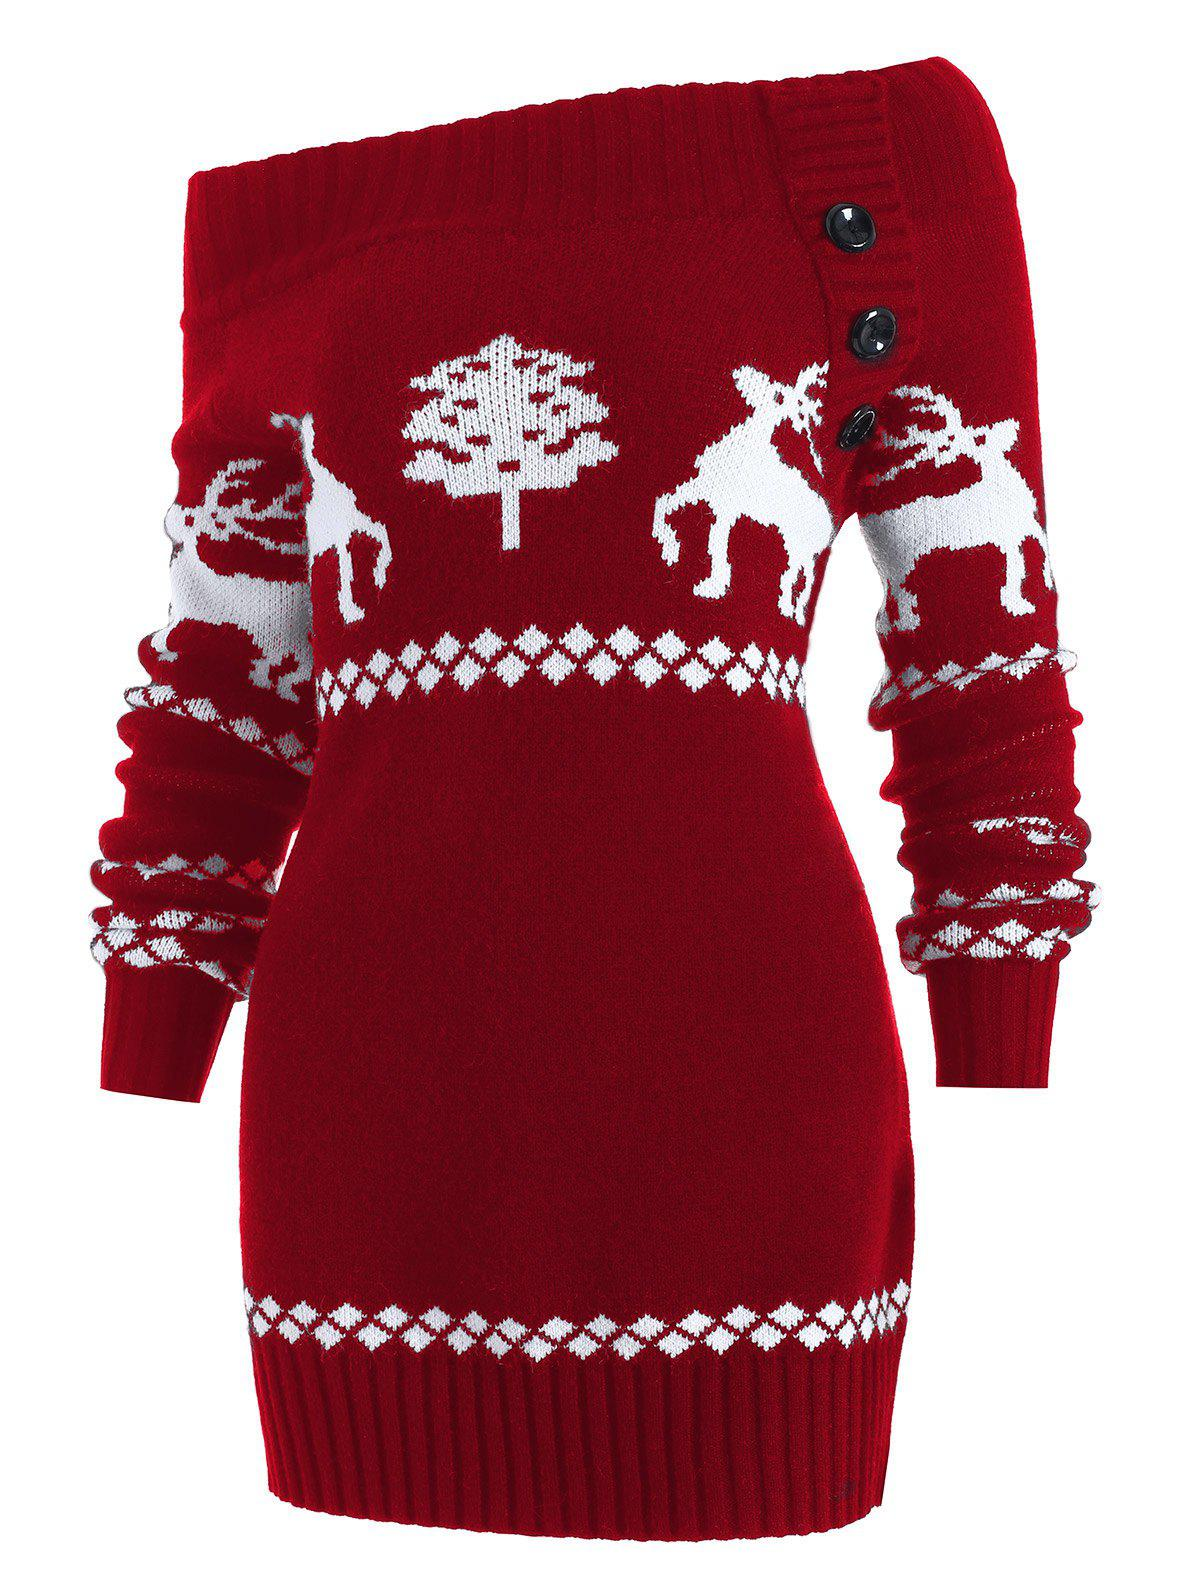 Reindeer Off The Shoulder Knit Tunic SweaterWOMEN<br><br>Size: XL; Color: RED; Type: Pullovers; Material: Acrylic; Sleeve Length: Full; Collar: Off The Shoulder; Style: Fashion; Pattern Type: Character; Season: Fall,Spring,Winter; Elasticity: Elastic; Weight: 0.5600kg; Package Contents: 1 x Sweater;